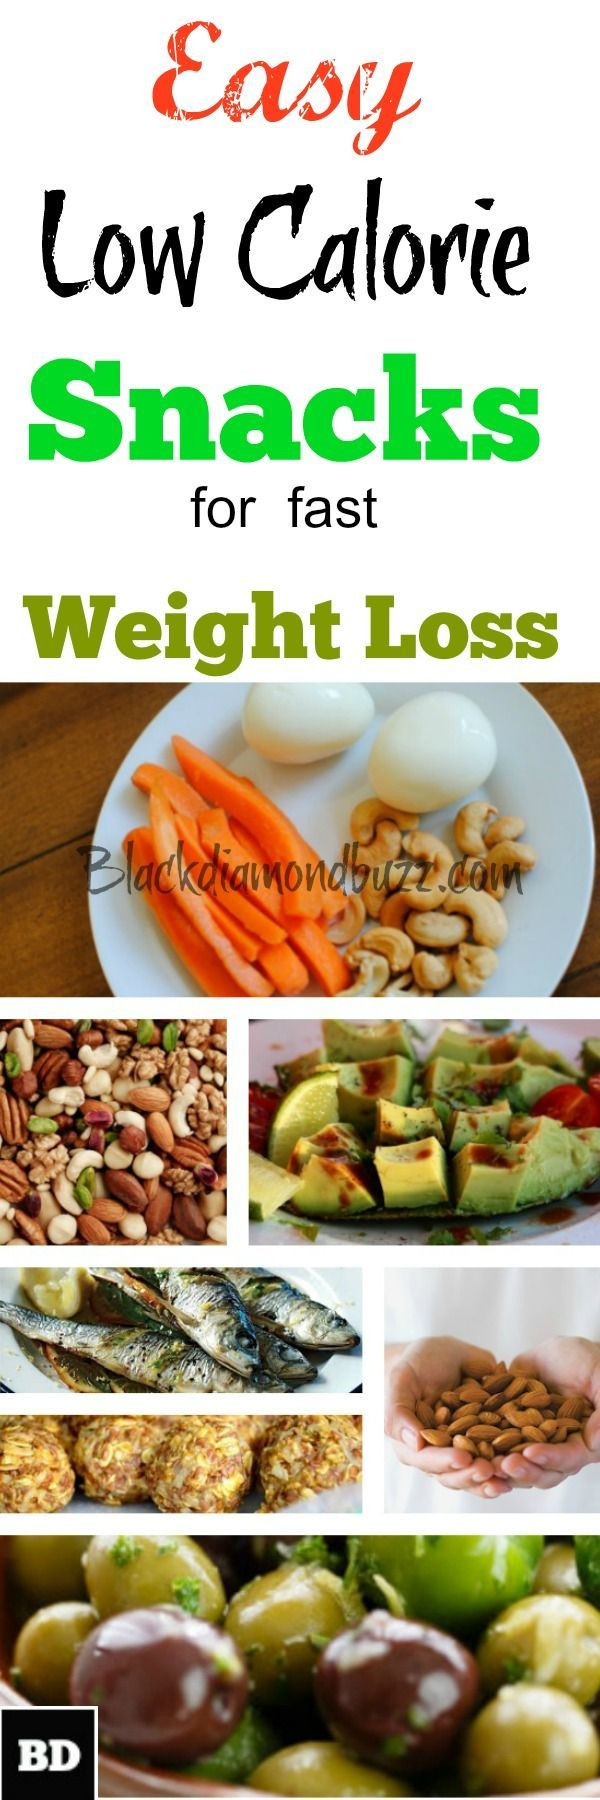 Healthy Snack Recipes For Weight Loss  Best 25 Snacks for weight loss ideas on Pinterest